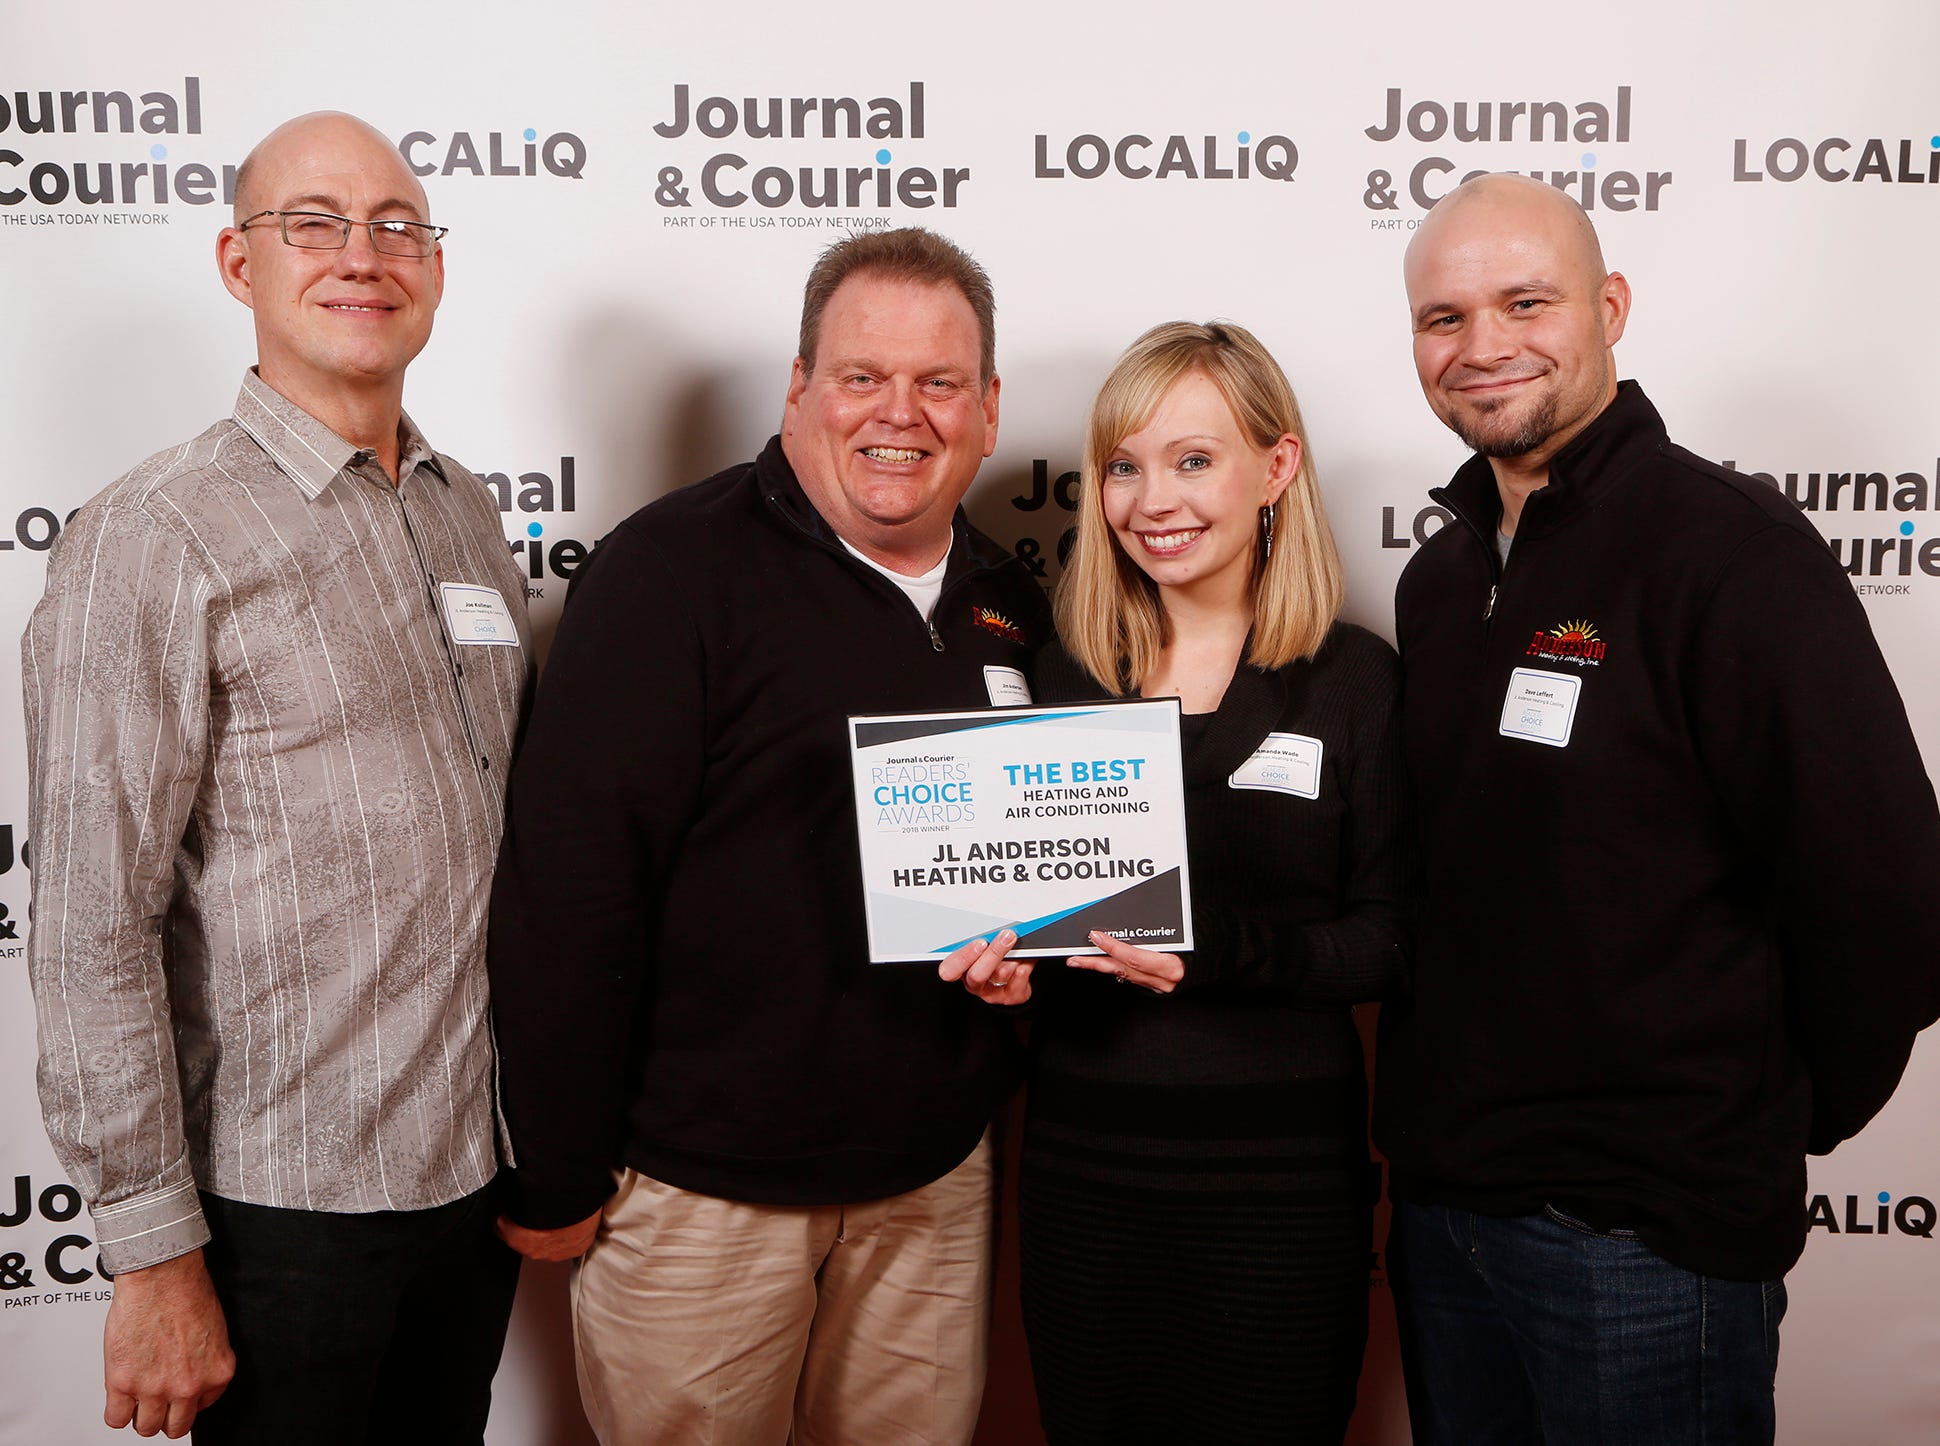 JL Anderson Heating & Cooling, Journal & Courier Readers' Choice Awards winner for the best heating and air conditioning.